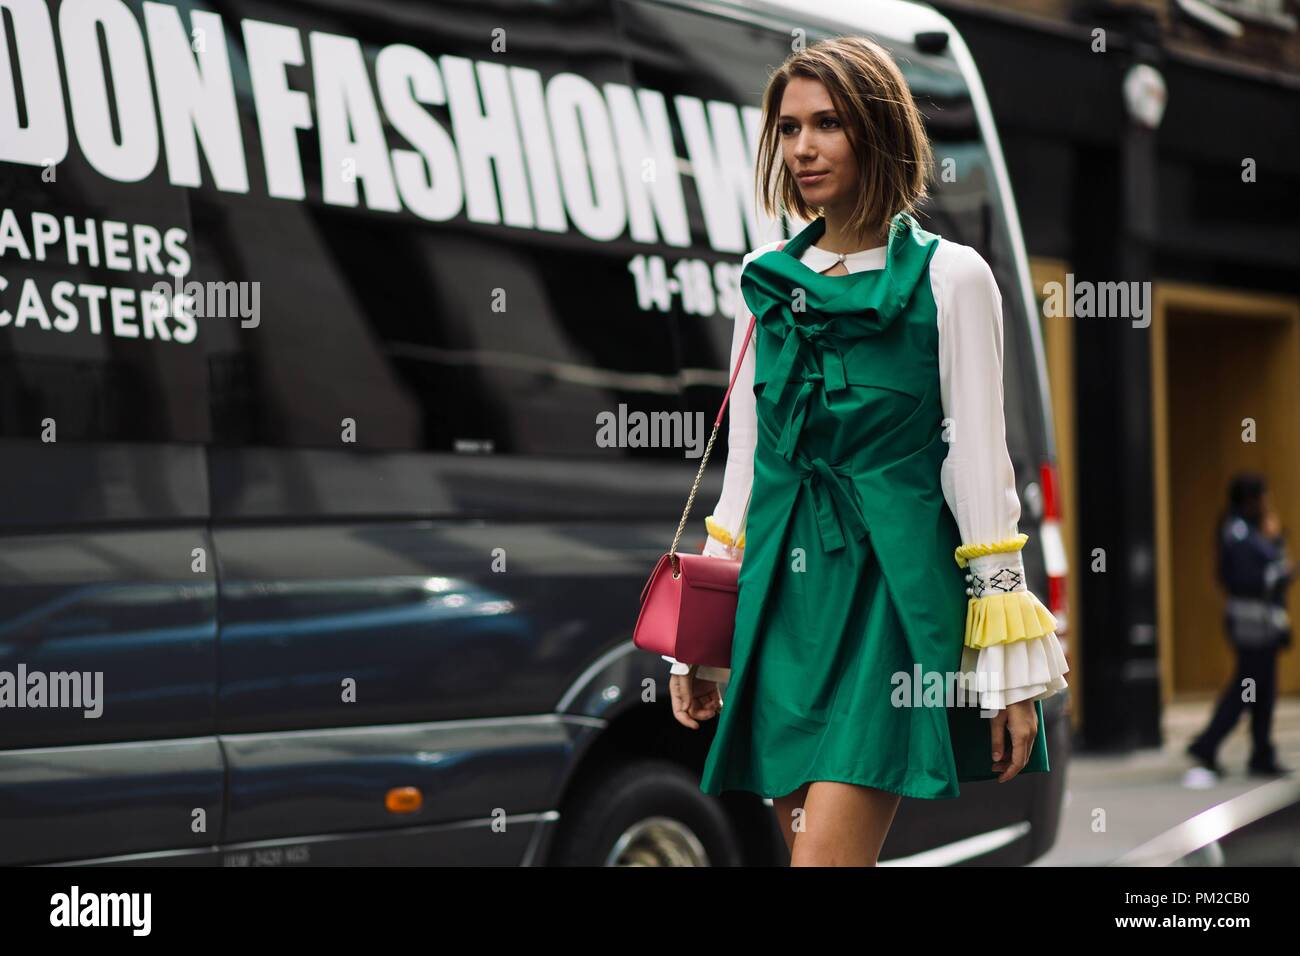 ad3034652e0 Landiana Yolo arriving at the Victoria Beckham runway show during London  Fashion Week - Sept 16